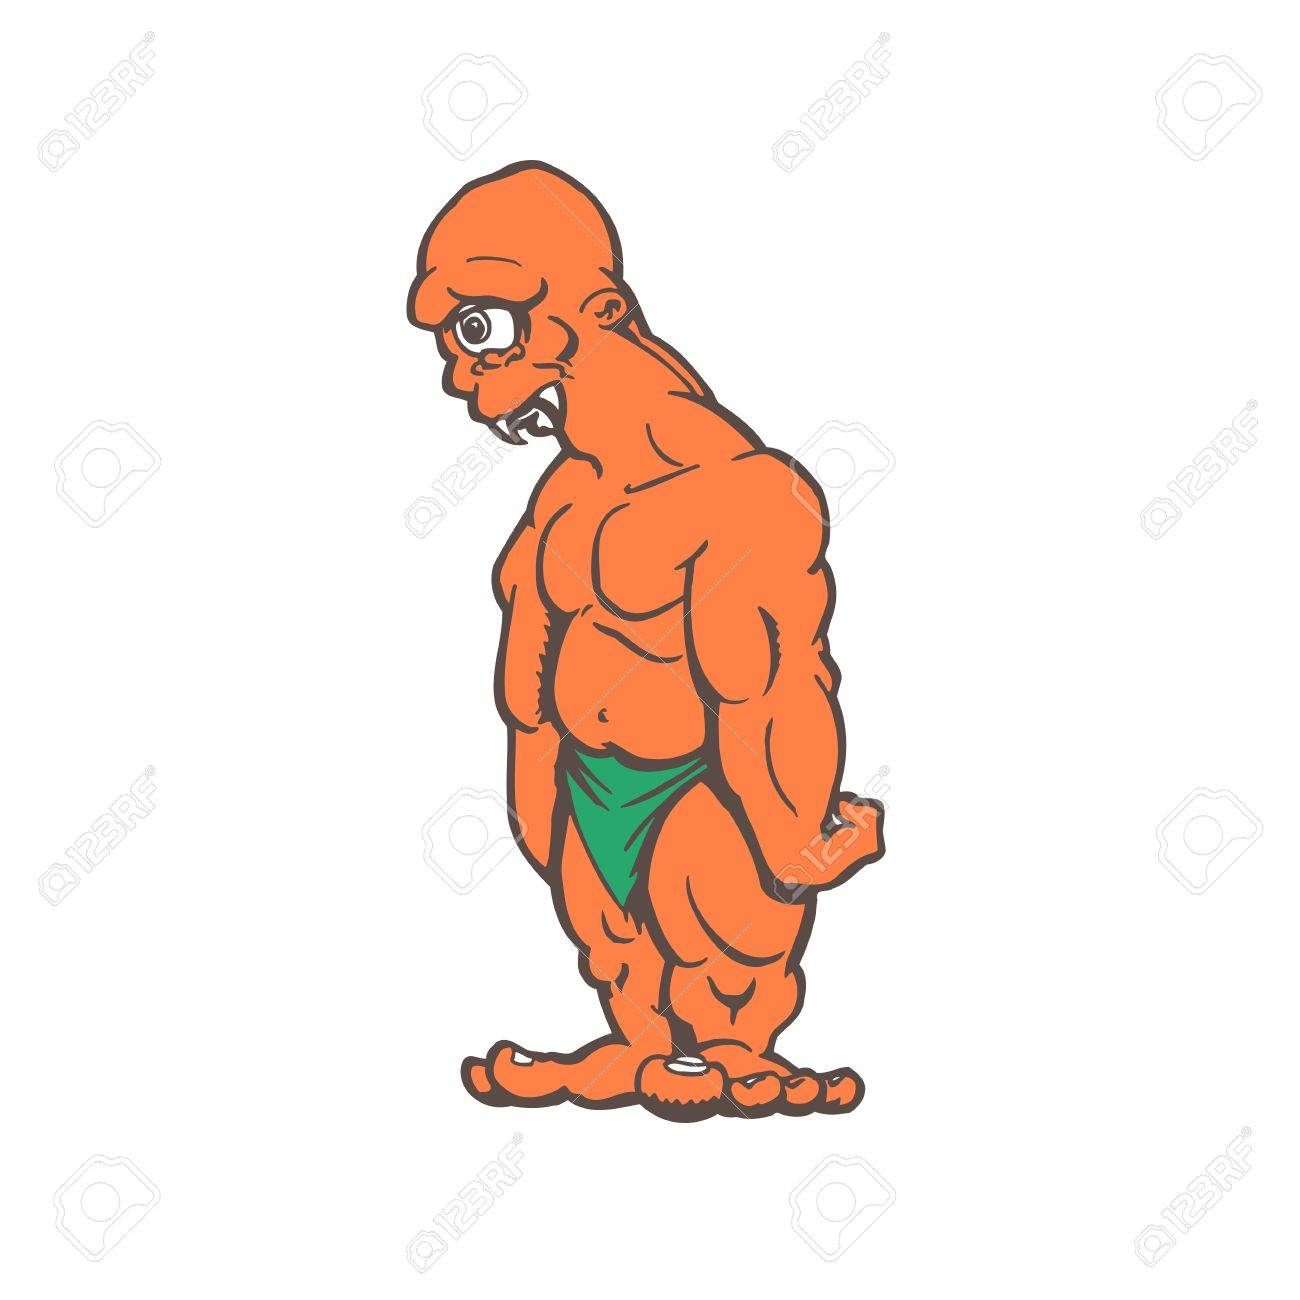 cyclops monster cartoon character on a white background vector